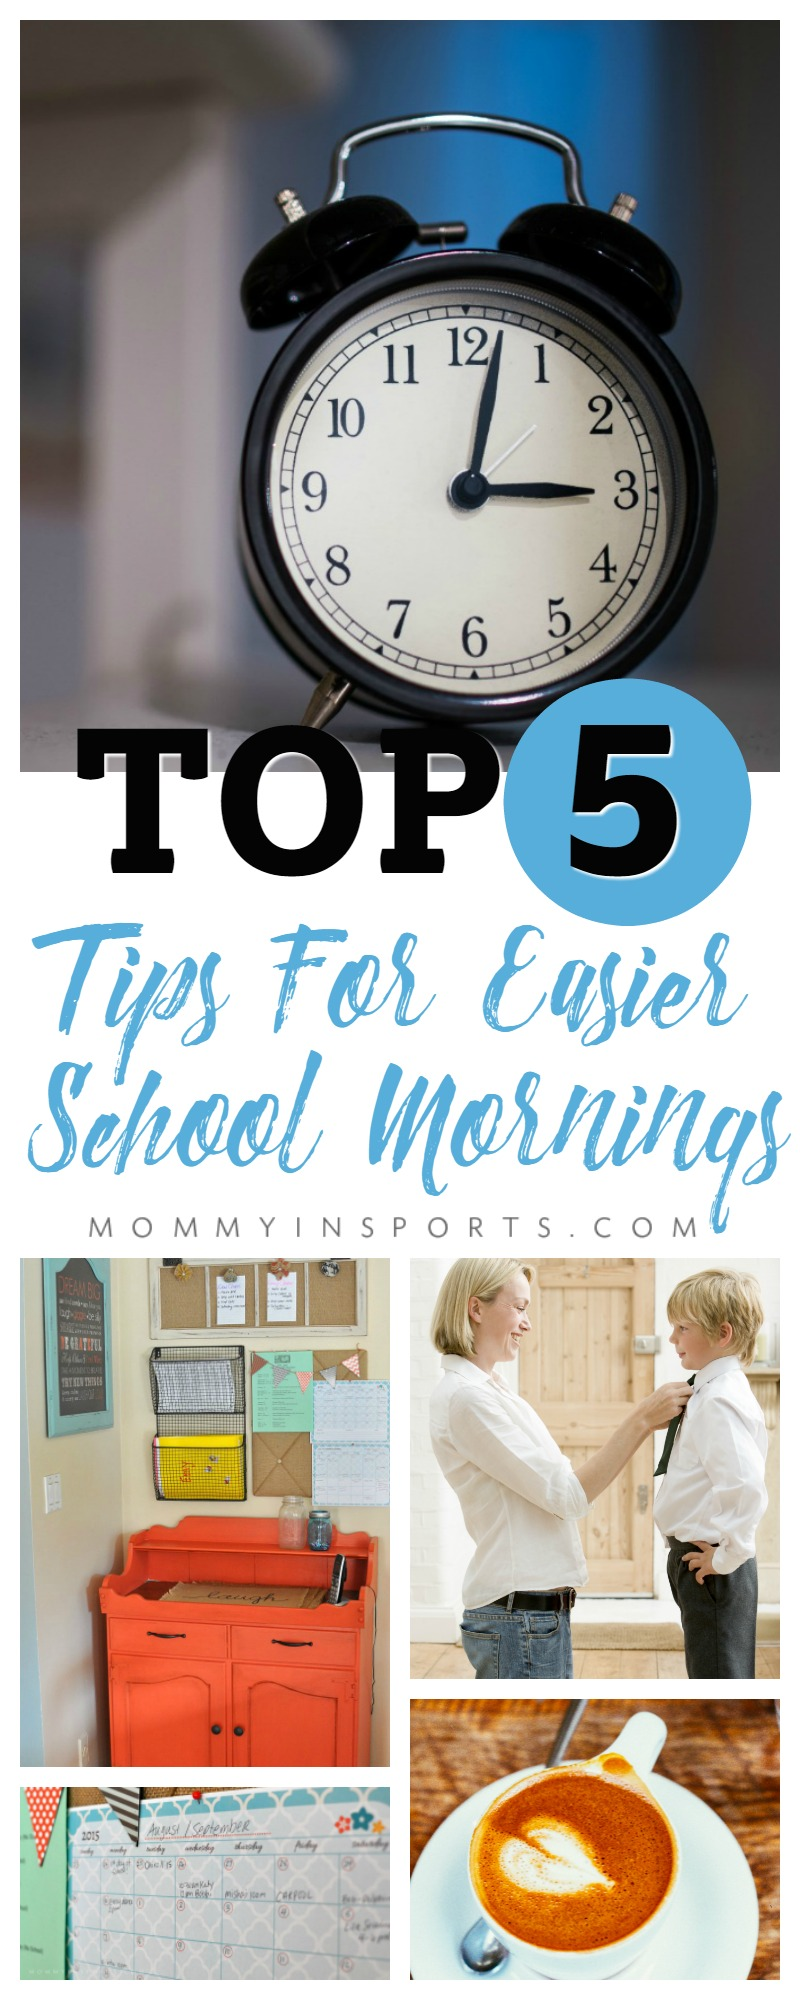 Having a rough time getting back to school routines? Try these top 5 tips for easier school mornings and make everyone's life so much happier!